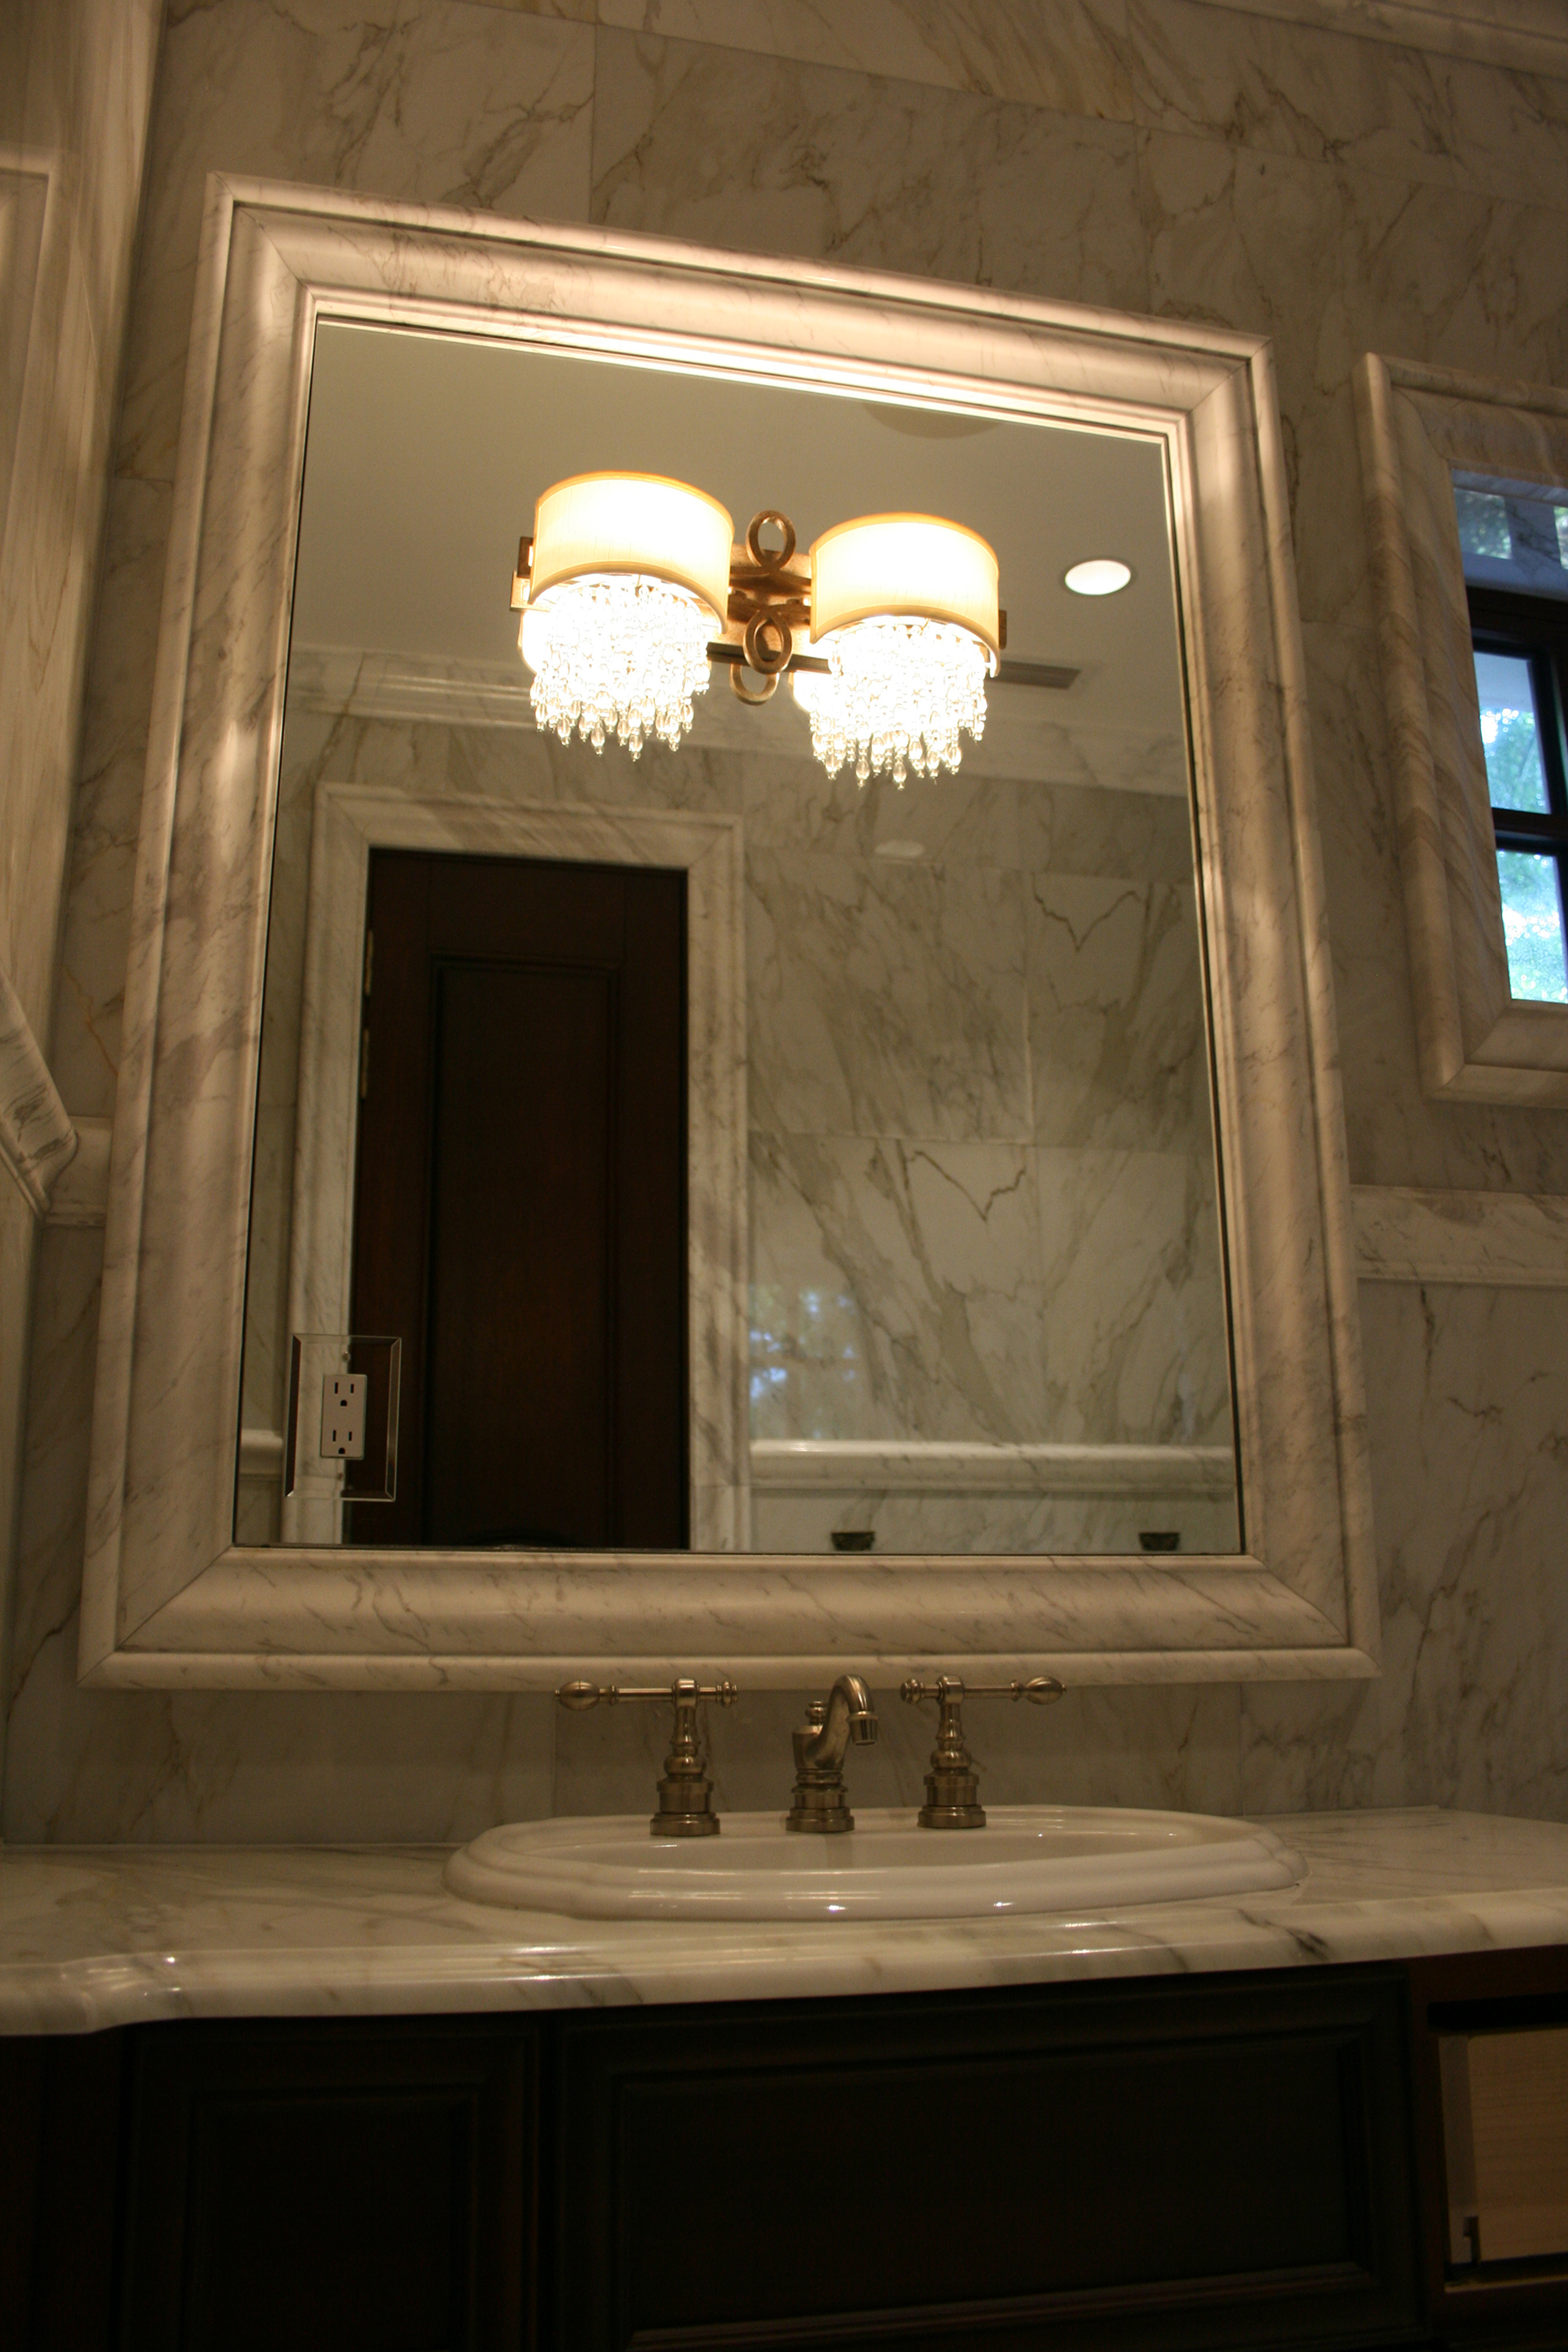 Stone Framed Bathroom Mirrors Bathroom Mirror With Light Fixture On Marble Allservices